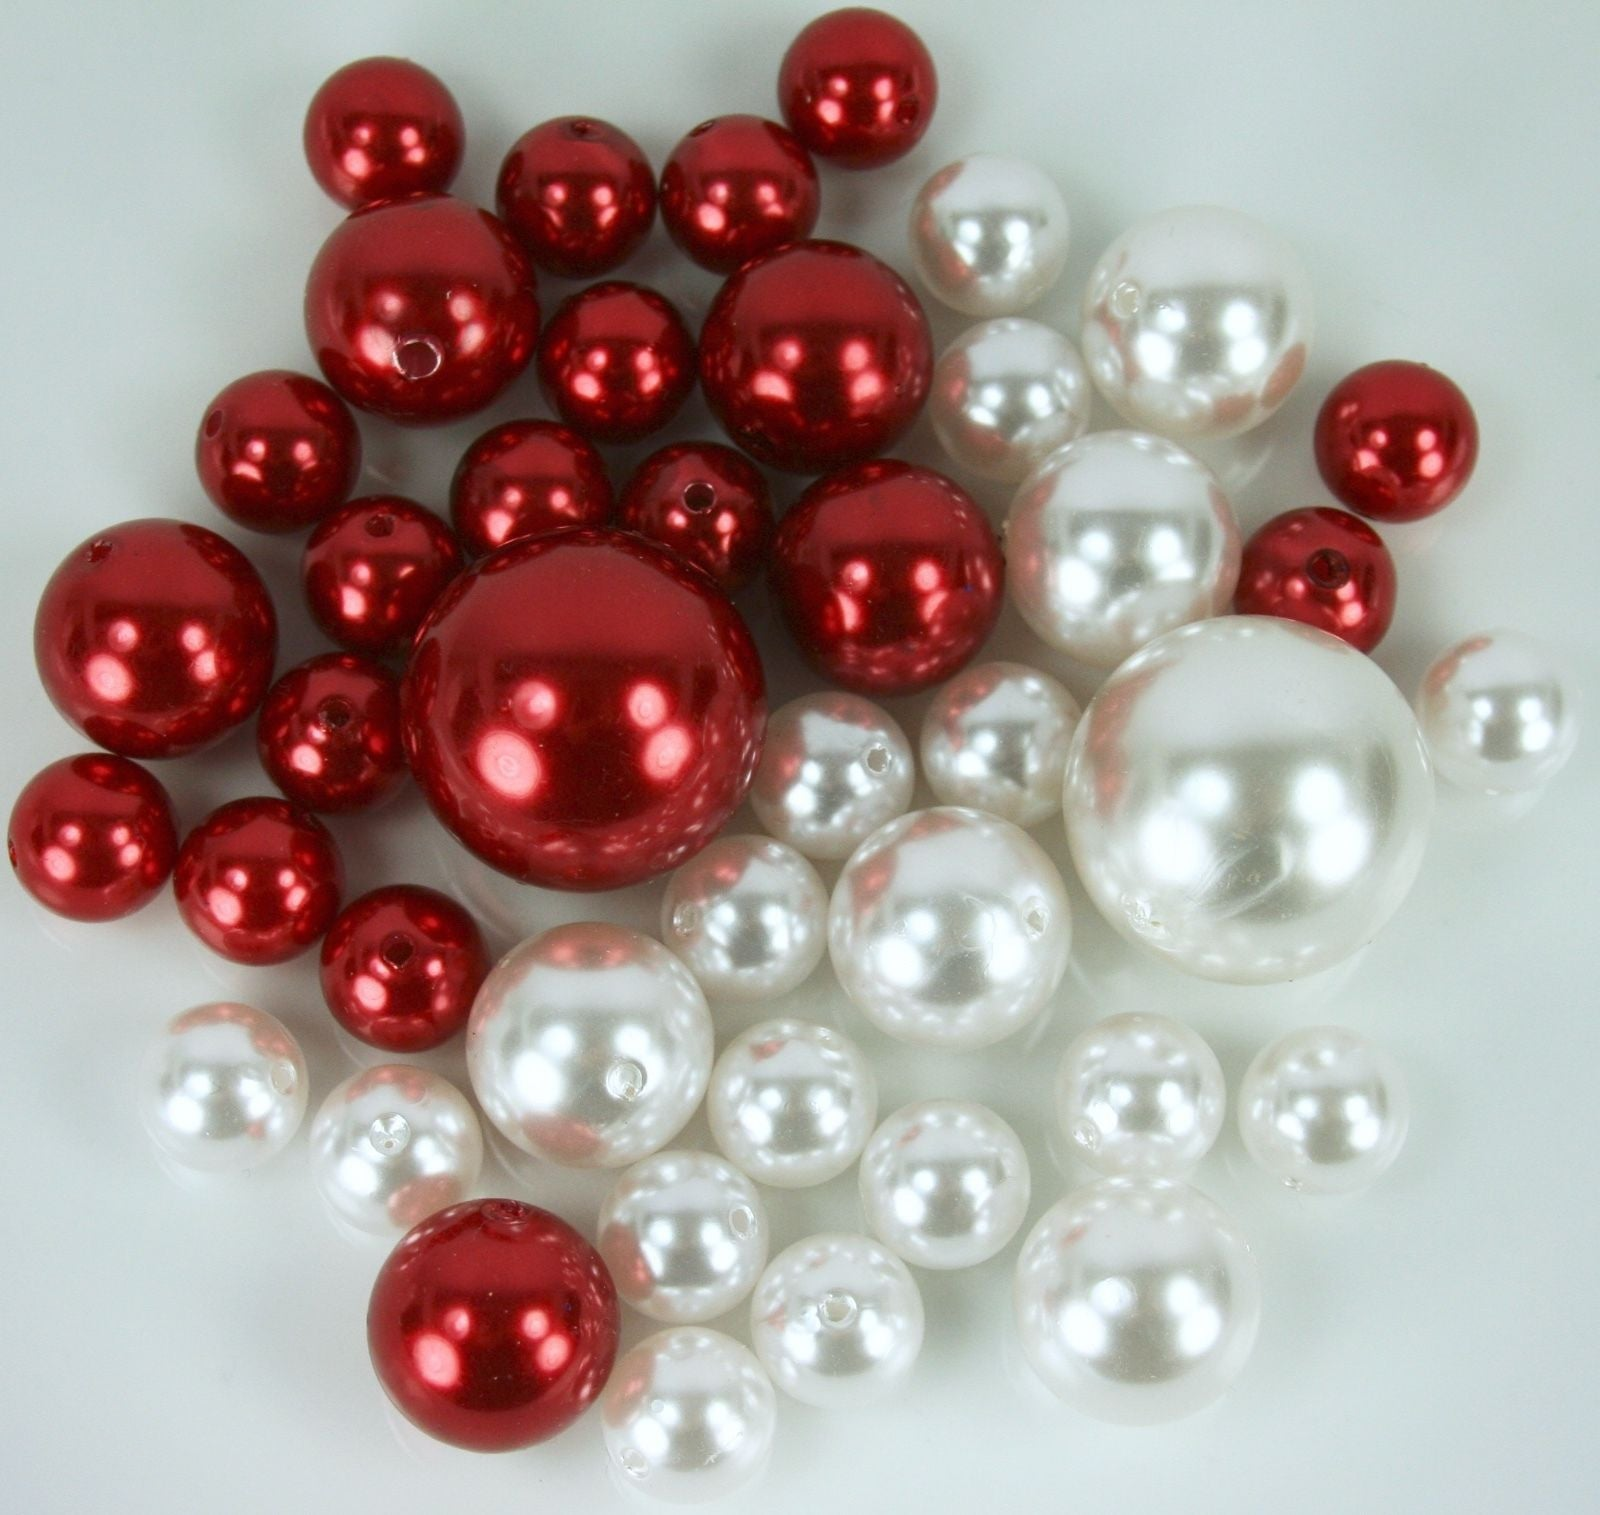 jewelry bulk rondelle beads glass fxad for wholesale crystal in making detail china product sale